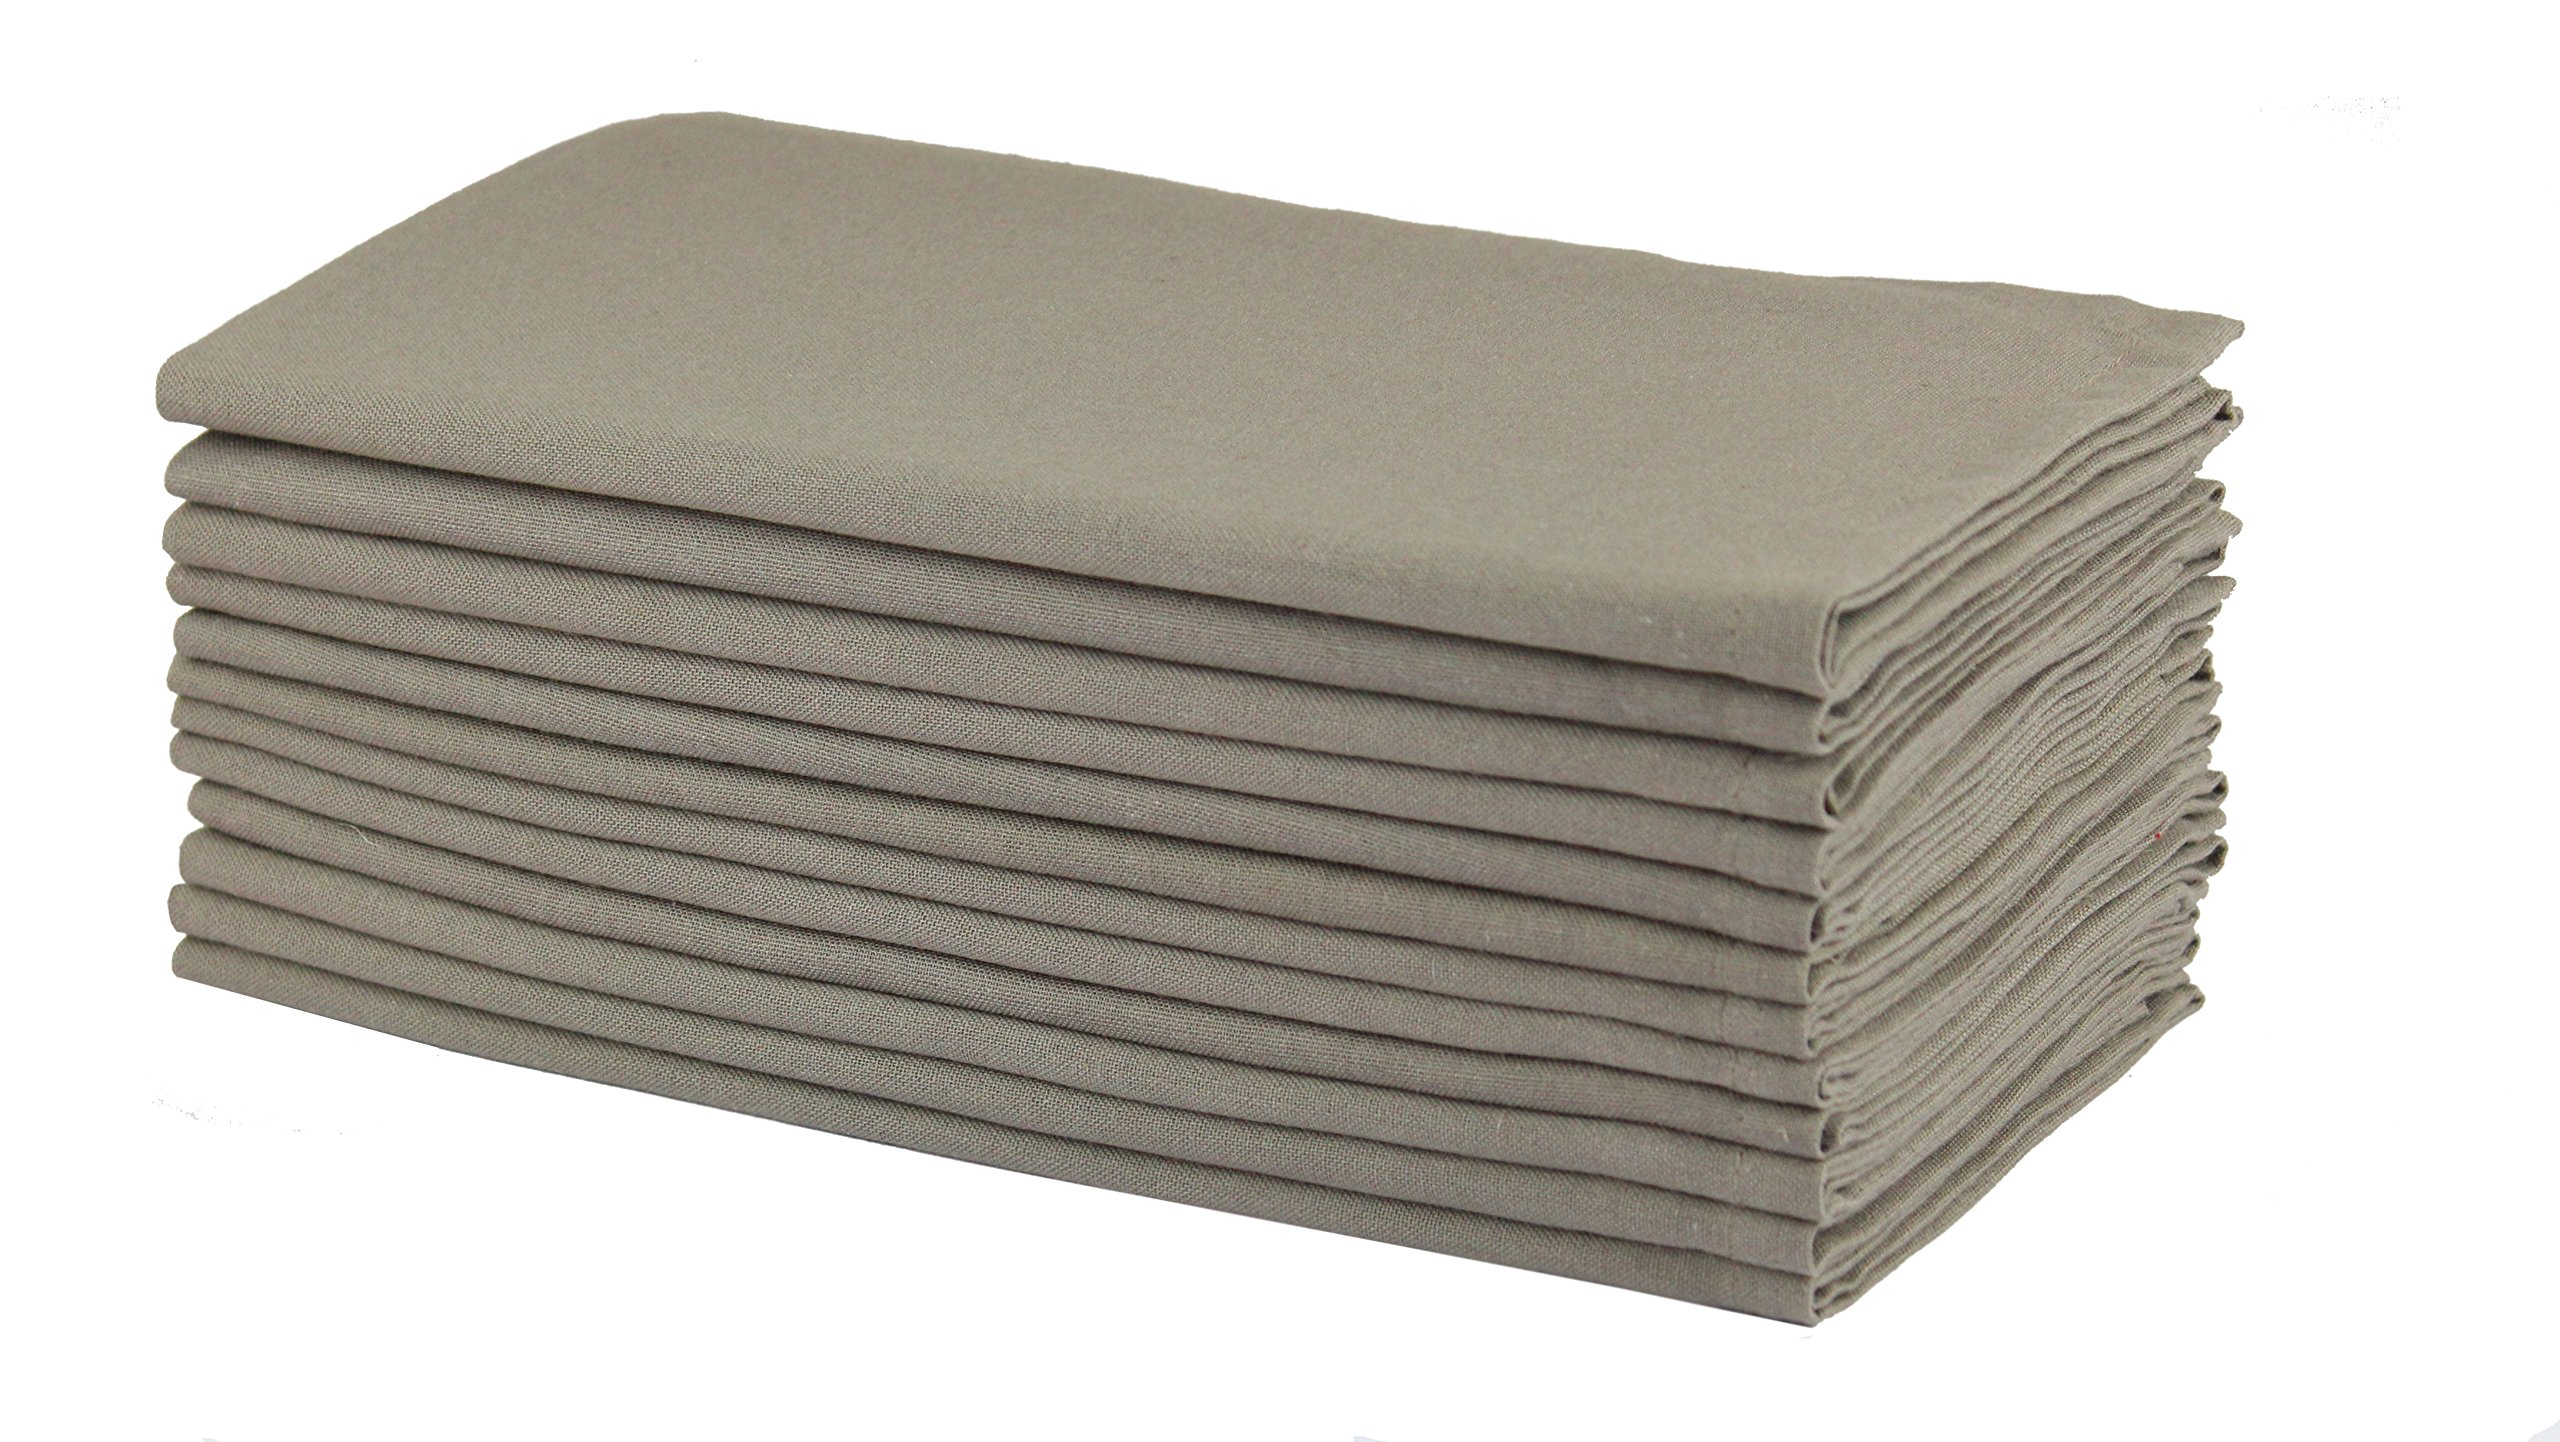 Cotton Craft Napkins, 12 Pack Oversized Dinner Napkins 20x20 Stone, 100% Cotton, Tailored with Mitered corners and a generous hem, Napkins are 38% larger than standard size napkins by Cotton Craft